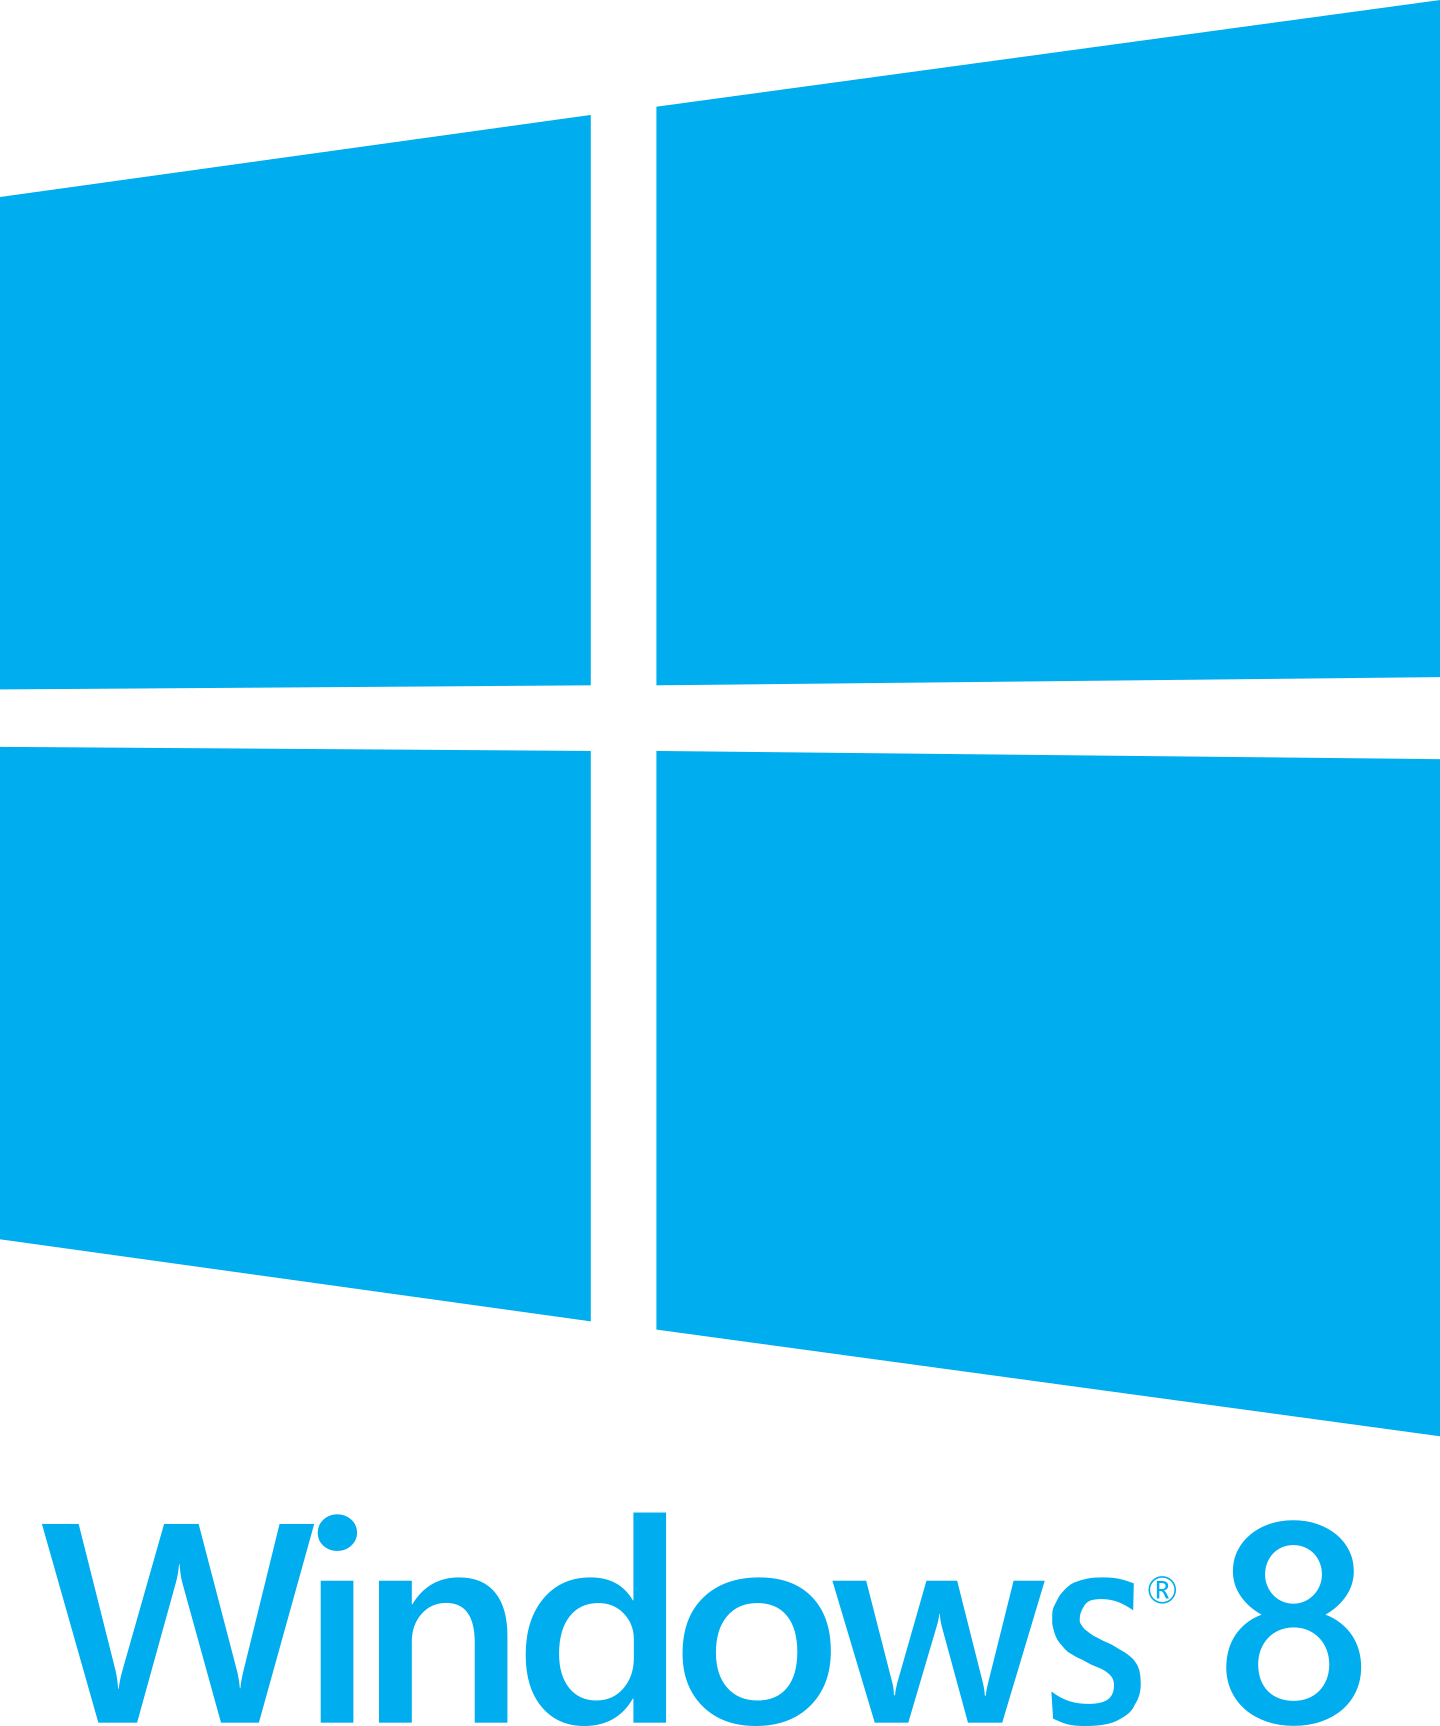 Windows 8 Logo.